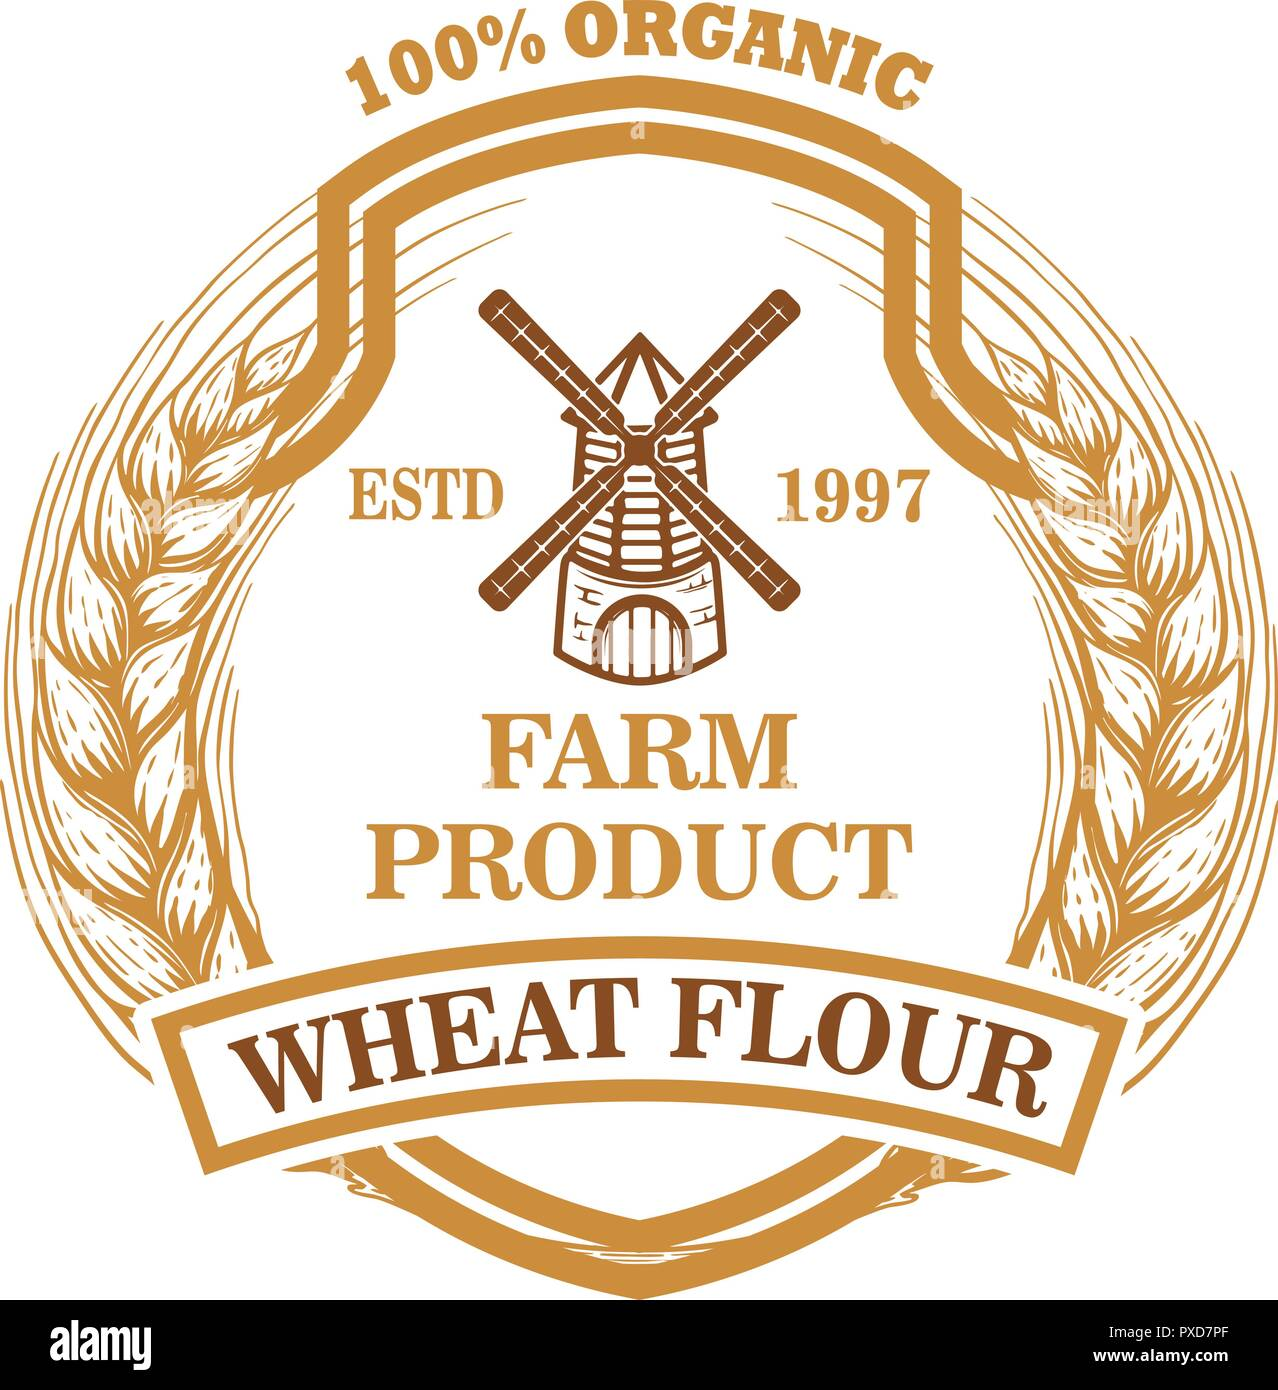 wheat flour label template with wind mill design element for logo